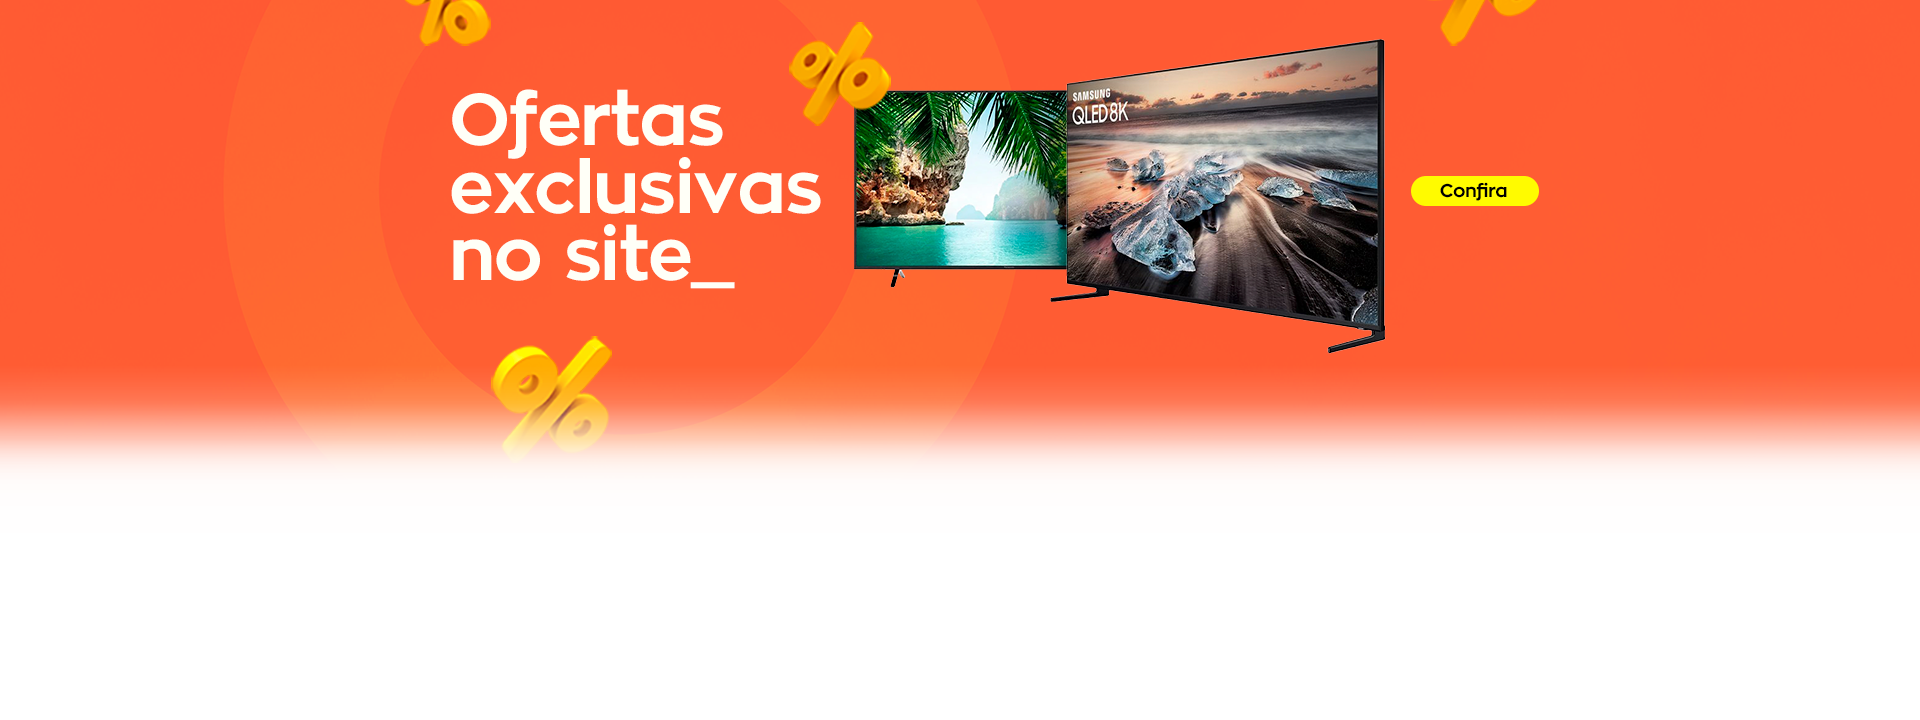 Ofertas Exclusivas no Site